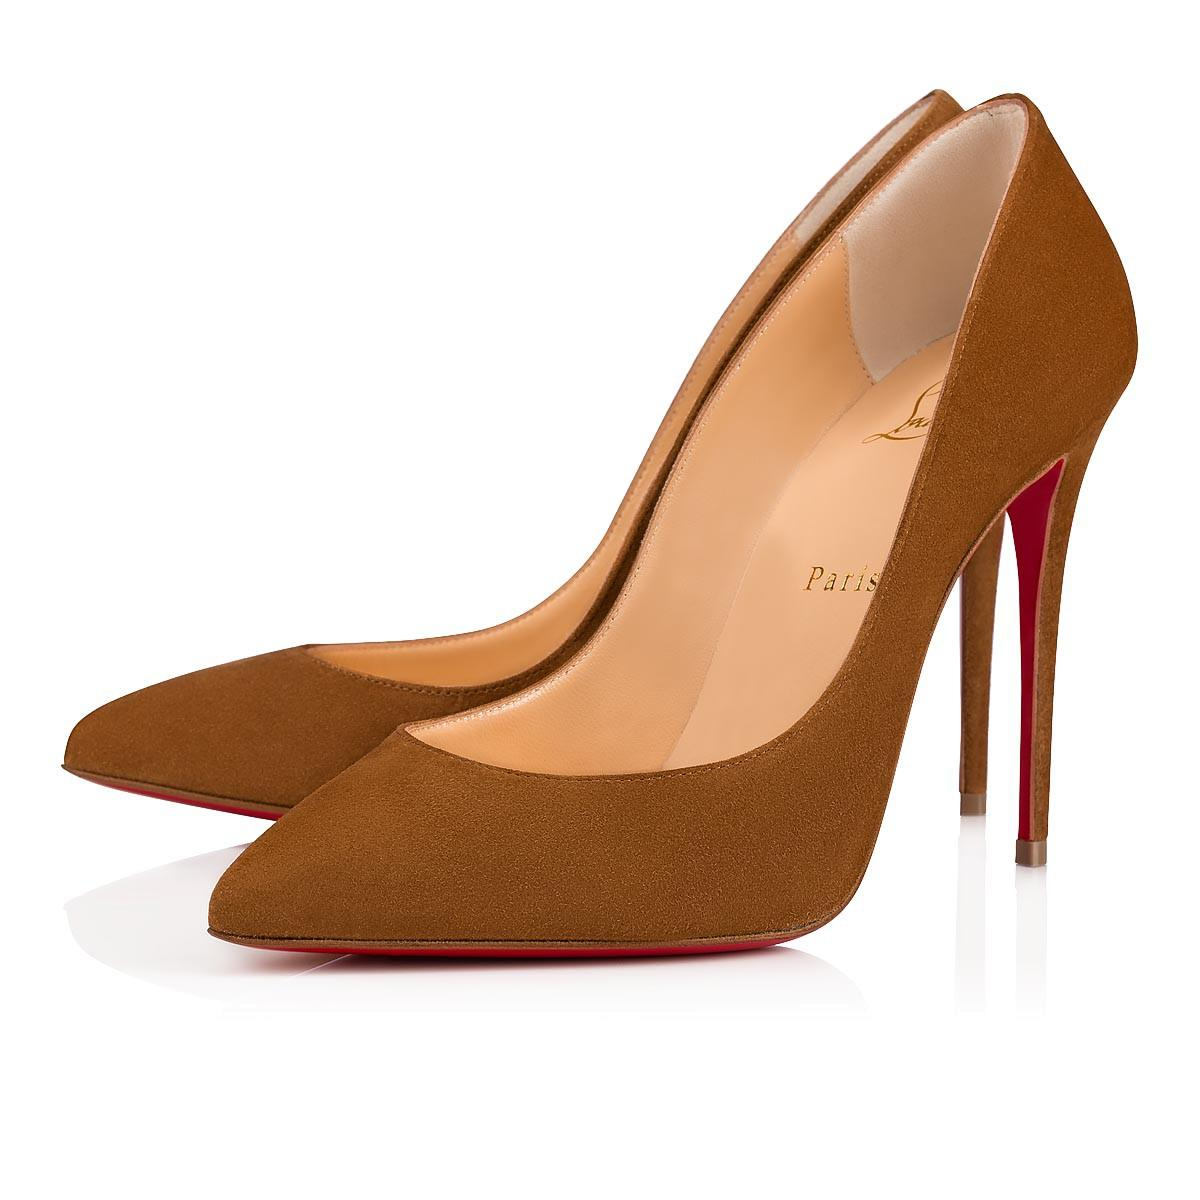 07fe34c31502 Reference   1170340P265 Color   Charlotte Material   Veau Velours Heel  height   100mm Collection   14W